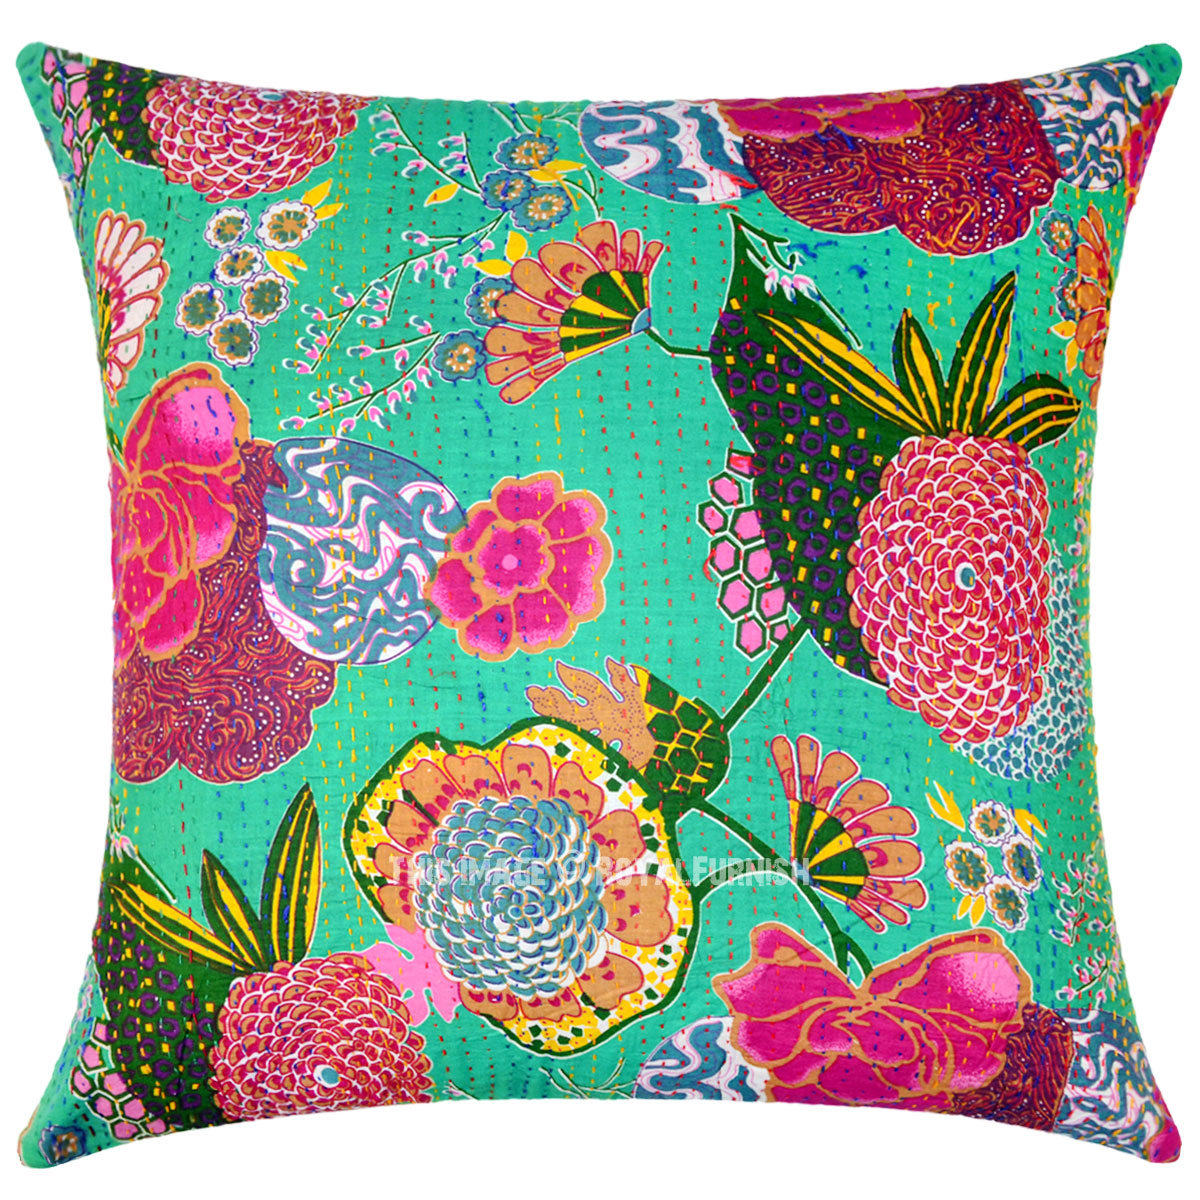 Green Decorative Amp Bohemian Accent Kantha Throw Pillow